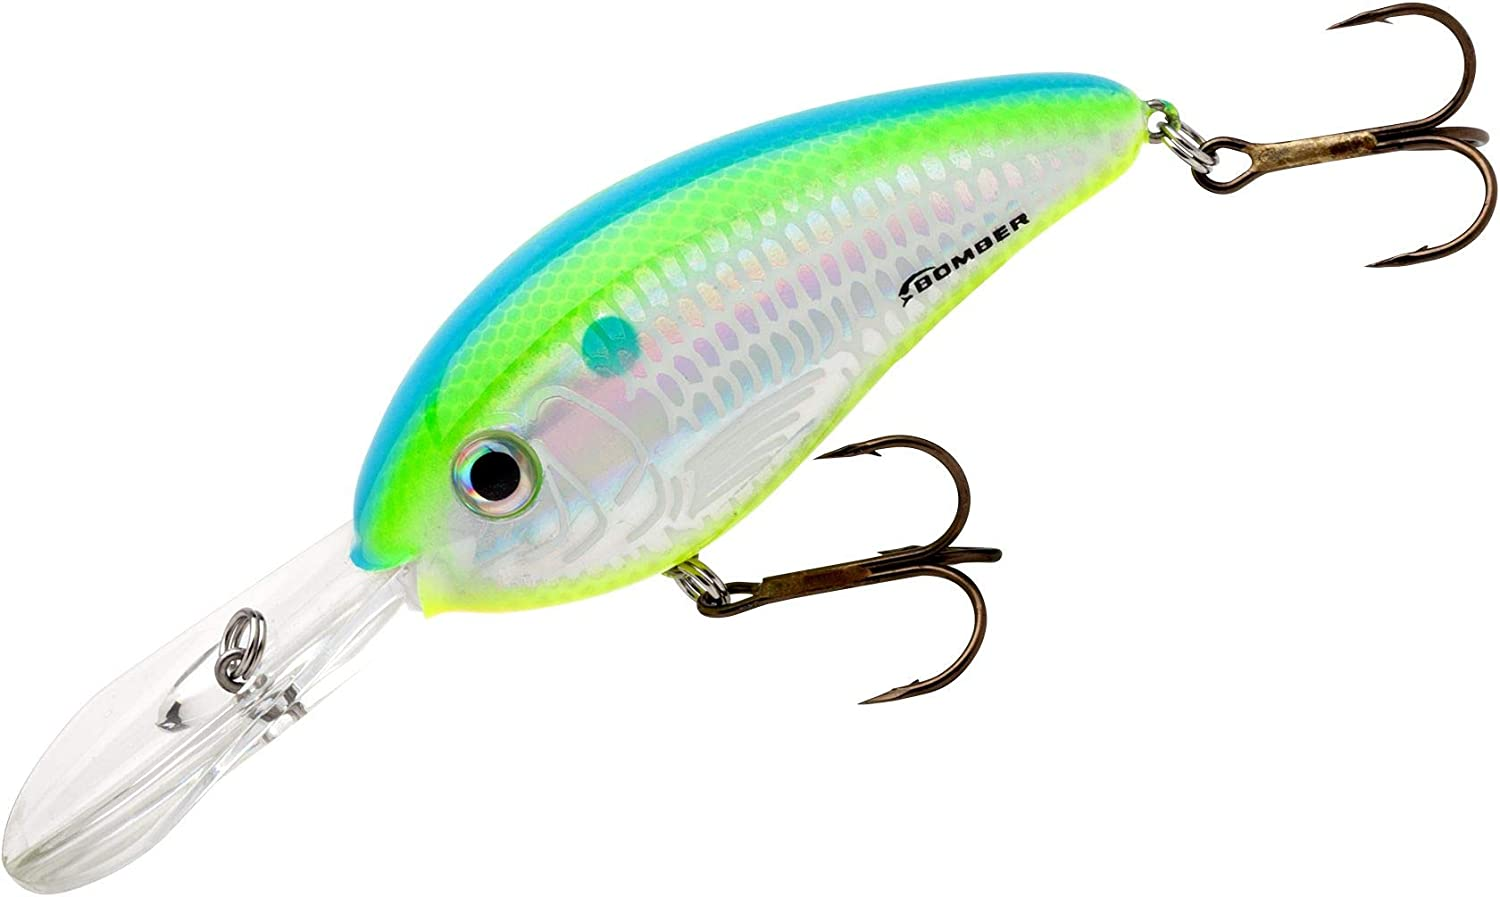 Bomber Lures Fat Free Shad Crankbait Bass Fishing Lure